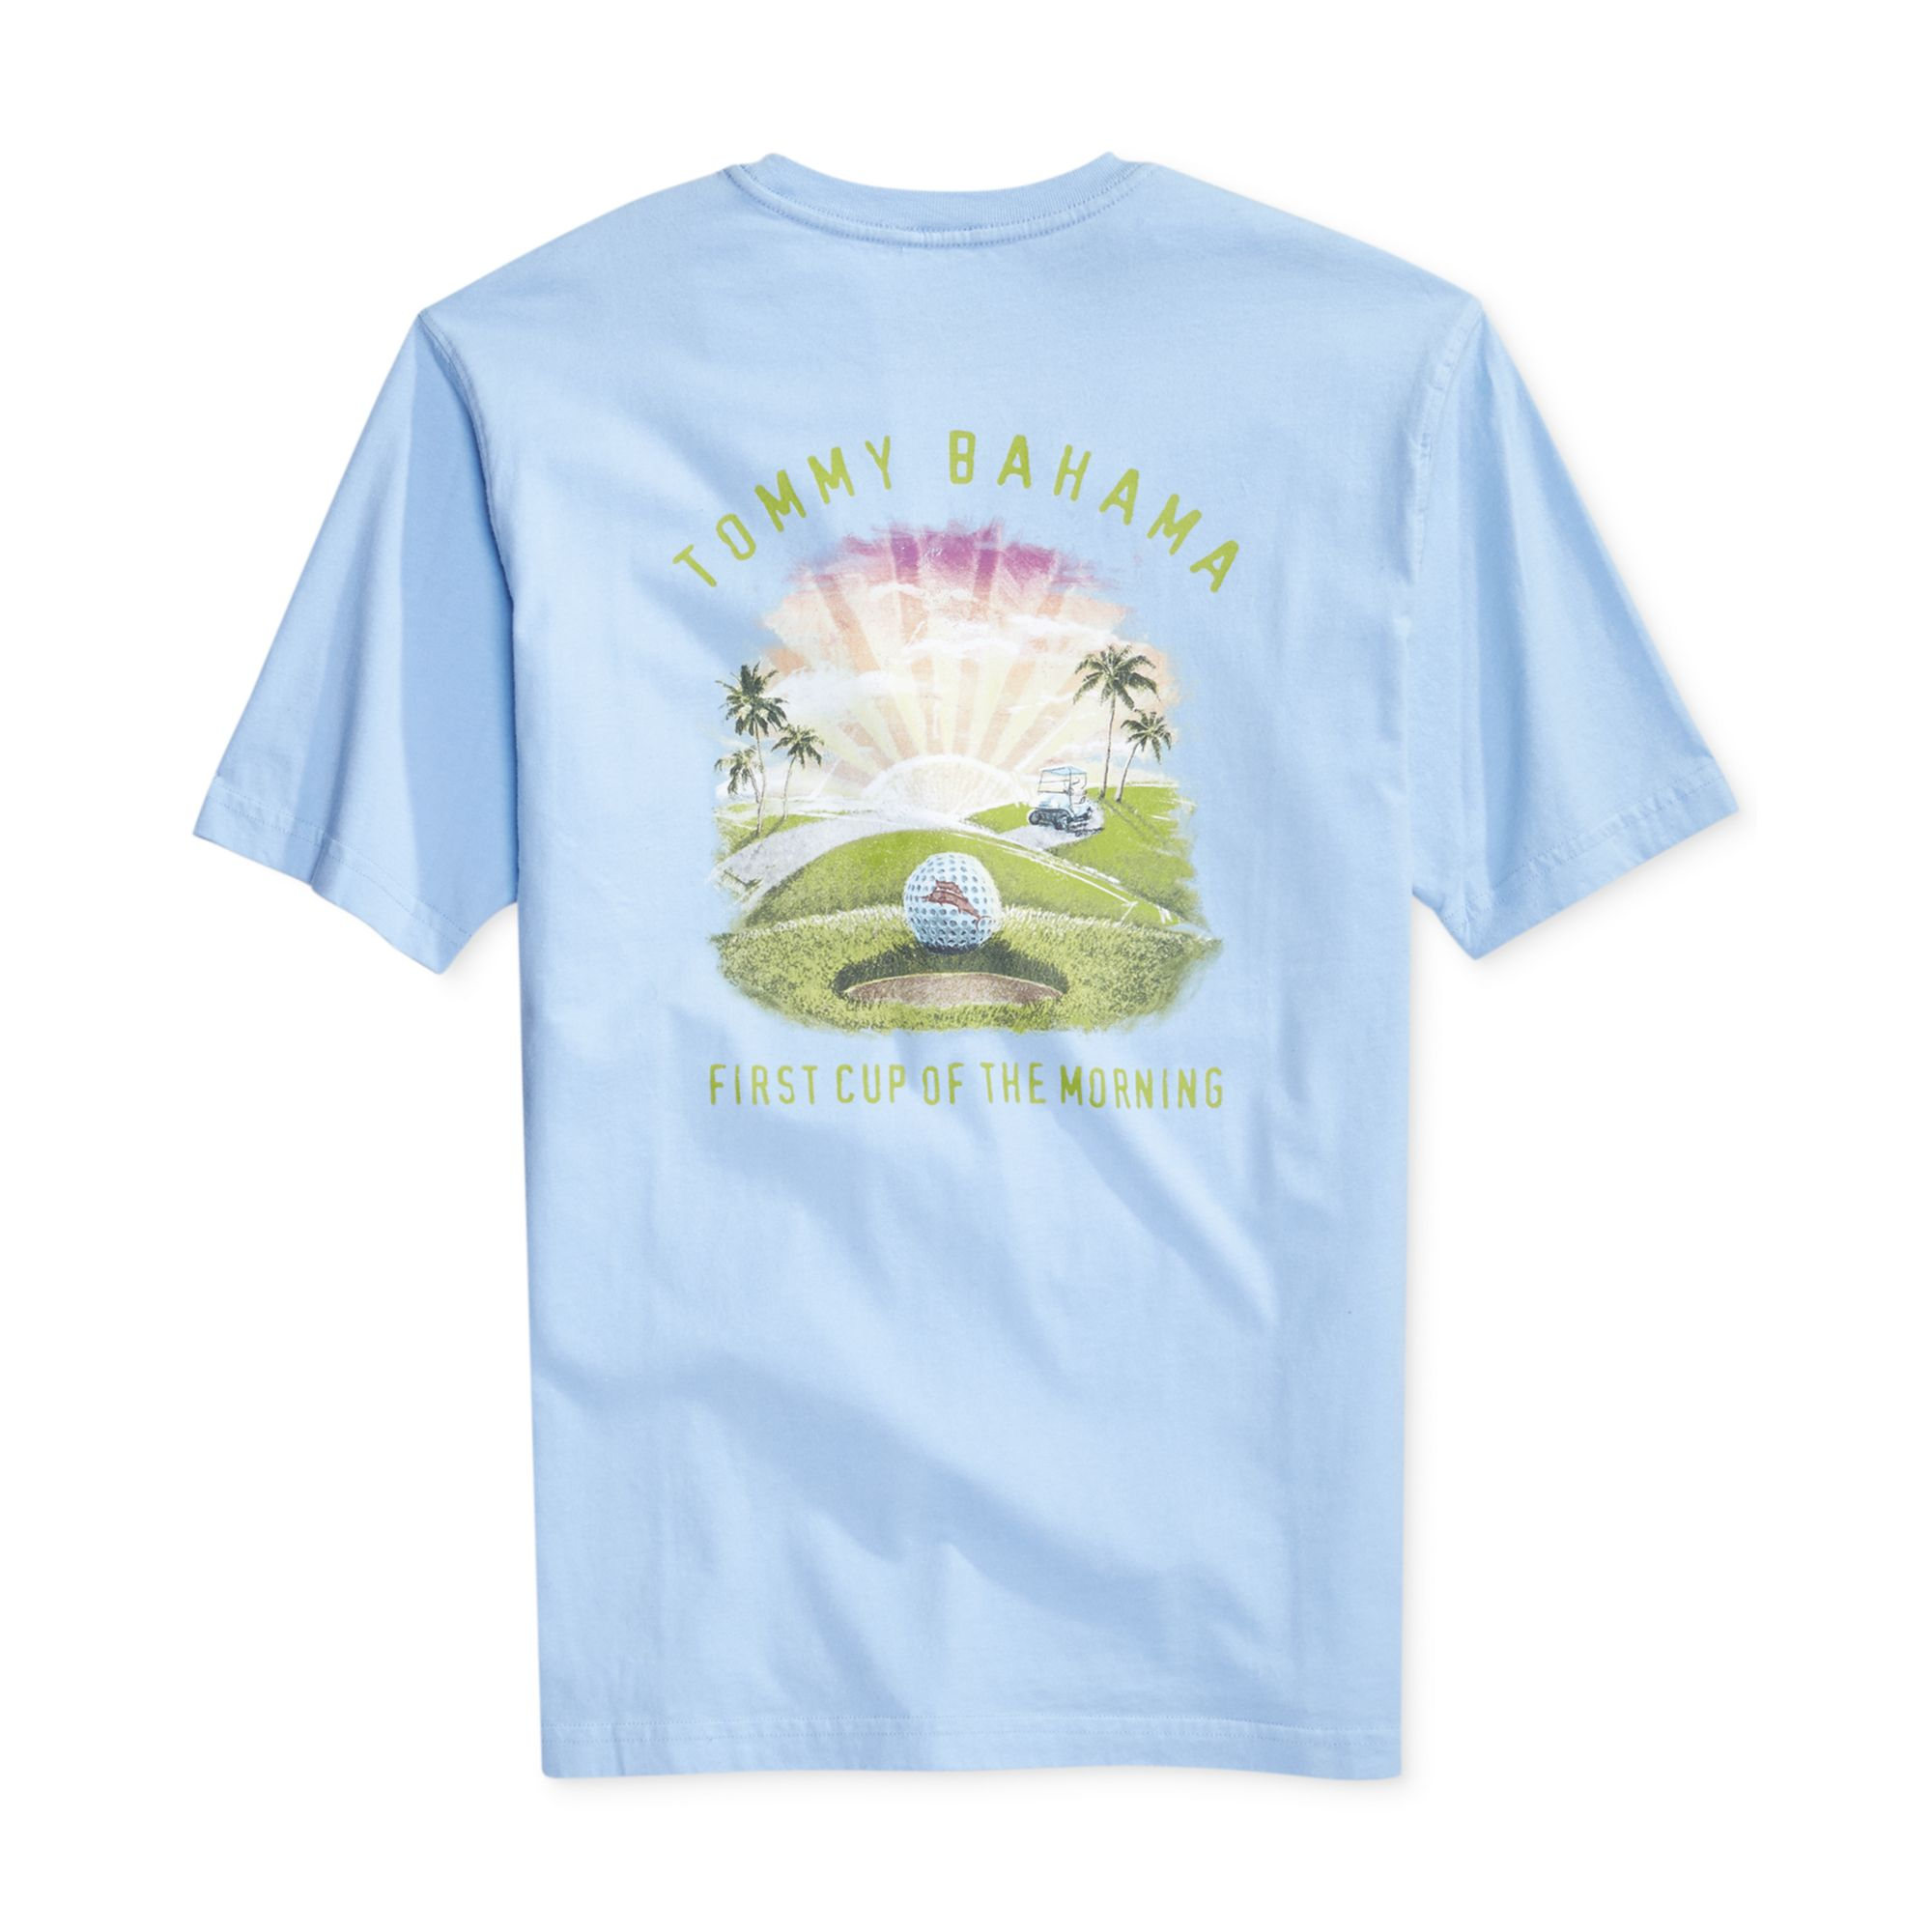 Tommy bahama first cup tshirt in blue for men chambray for Tommy bahama christmas shirt 2014